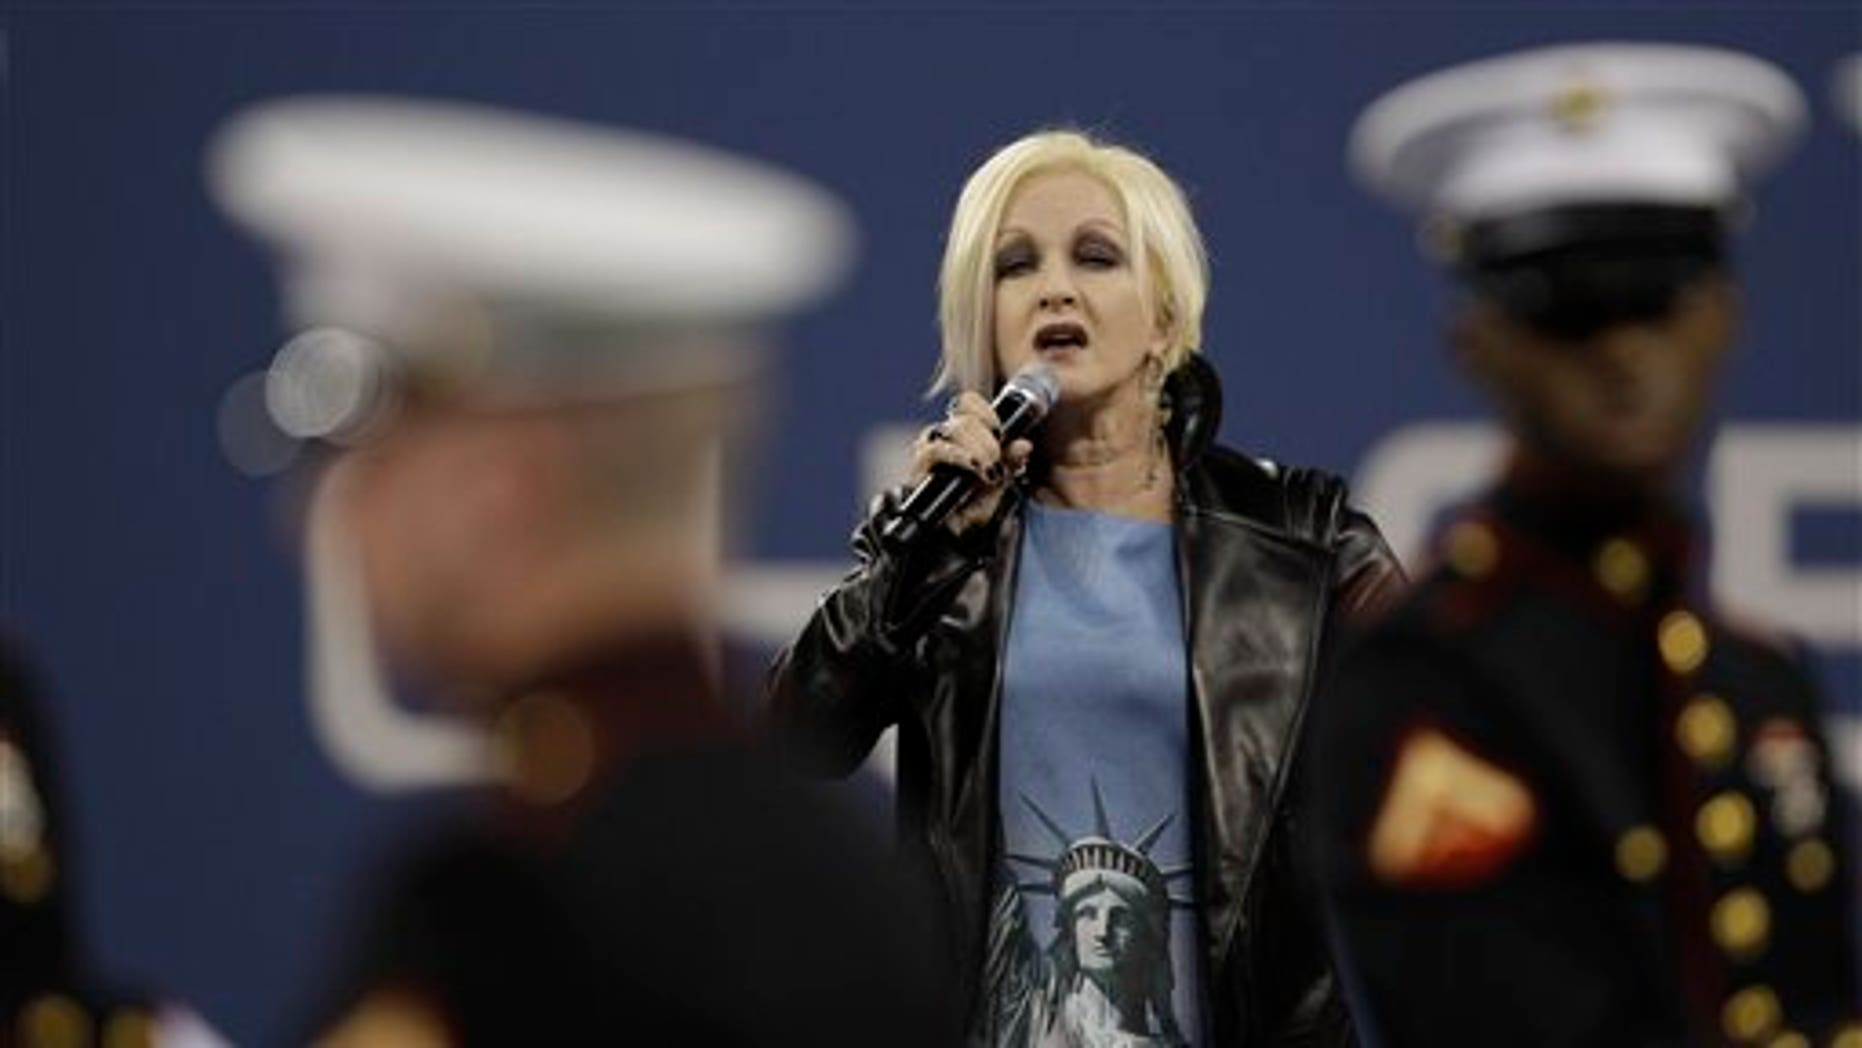 Sept. 10: Cyndi Lauper, center, performs during a ceremony to honor the victims of the Sept. 11 attacks at the U.S. Open tennis tournament in New York. (AP)